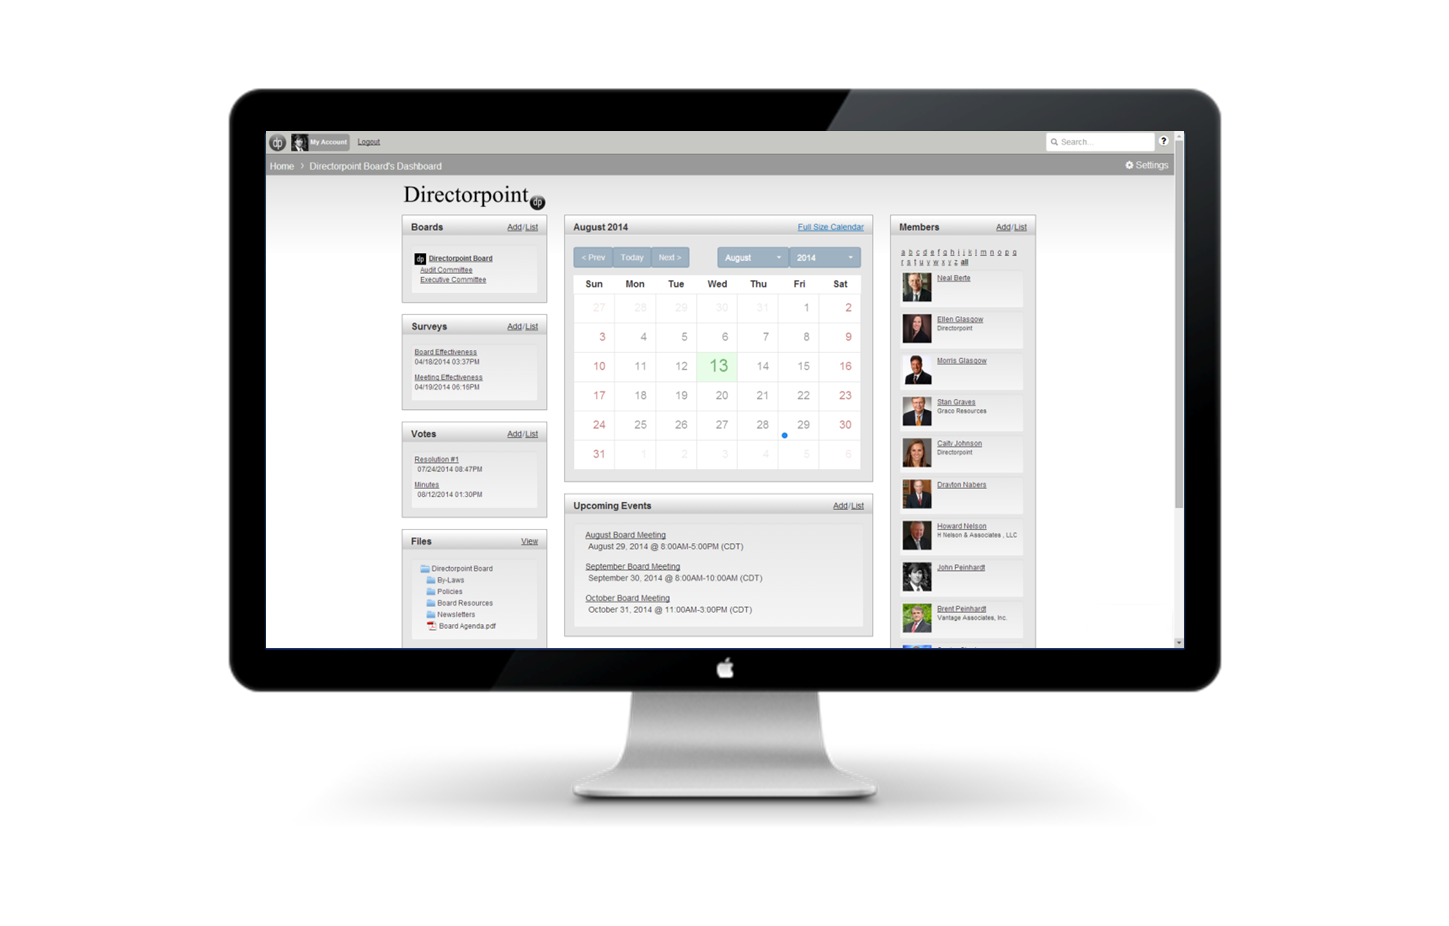 The dashboard enables users to manage calendars, view members, surveys, and more